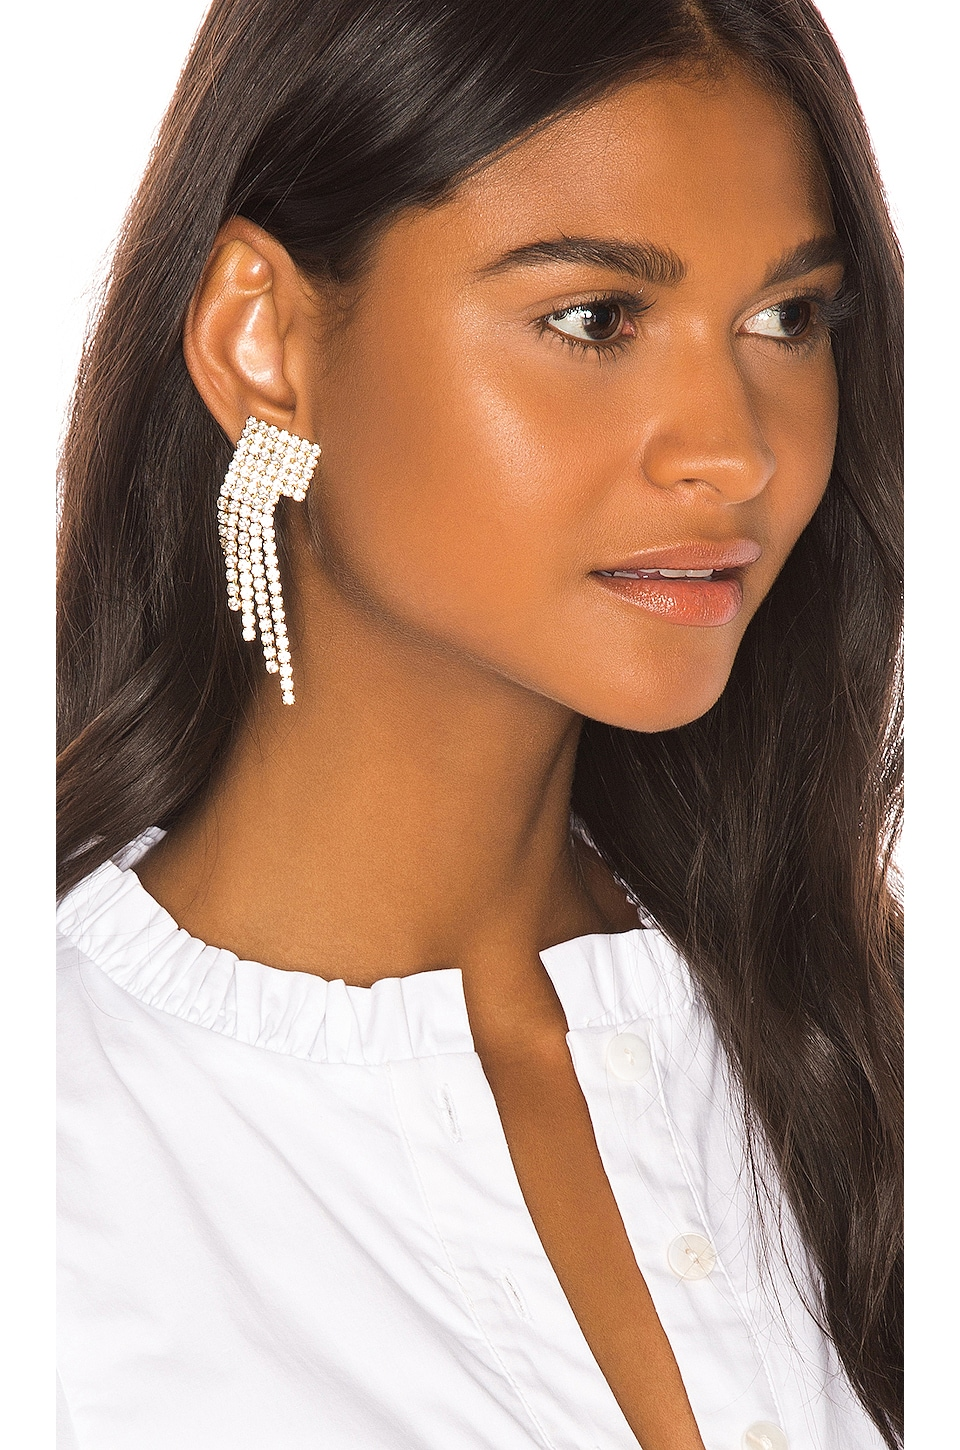 LPA Estelle Earring in White